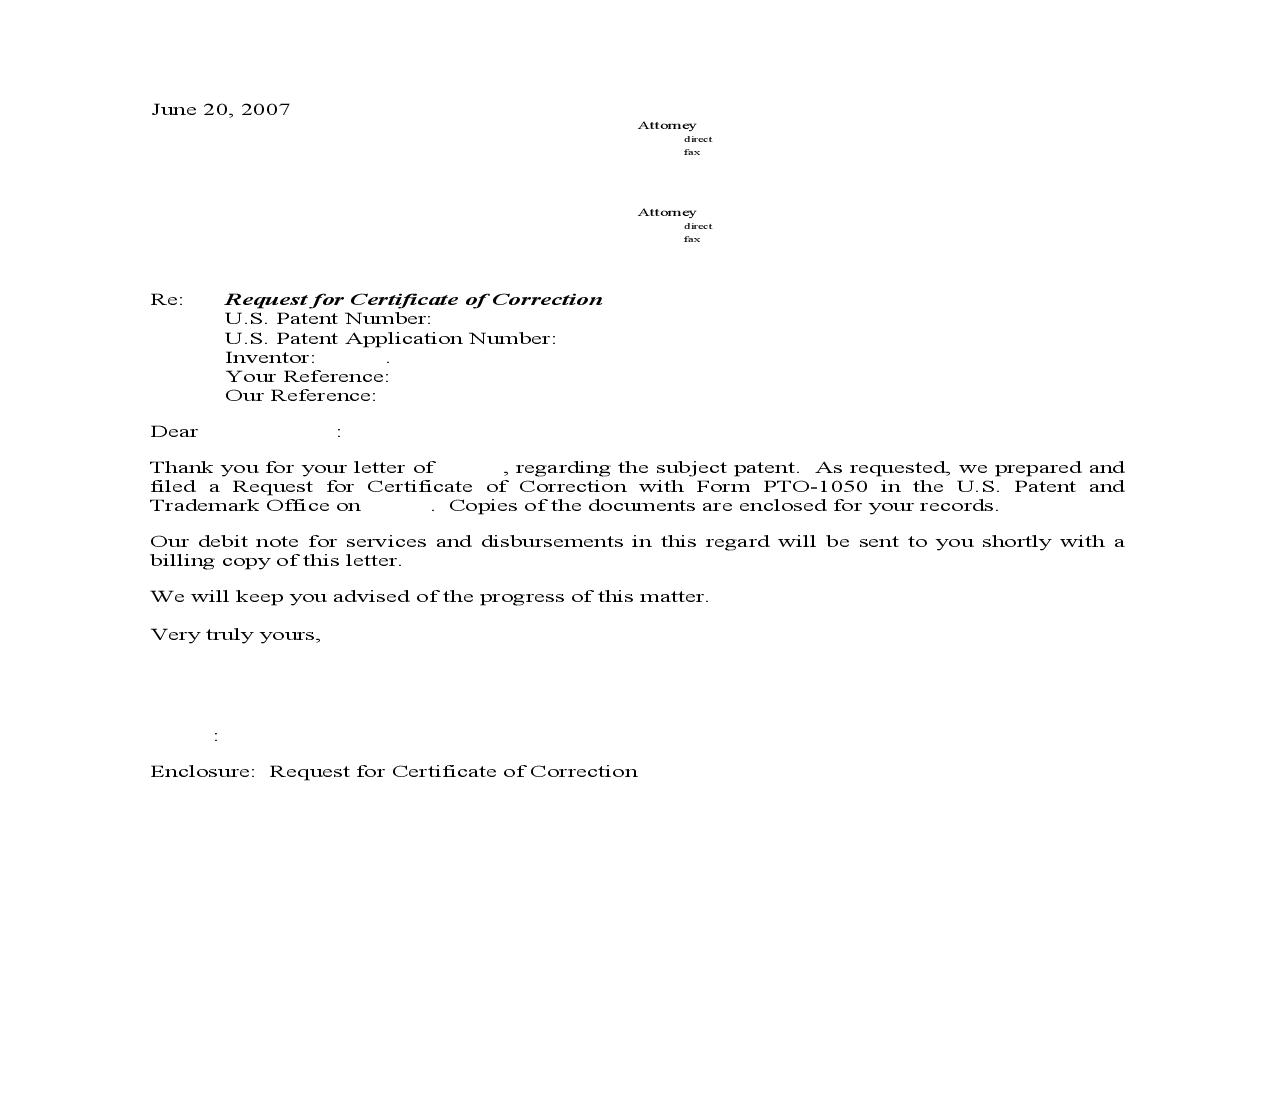 US_Ltr Certificate of Correction Filing | Pdf Doc Docx | Arent Fox